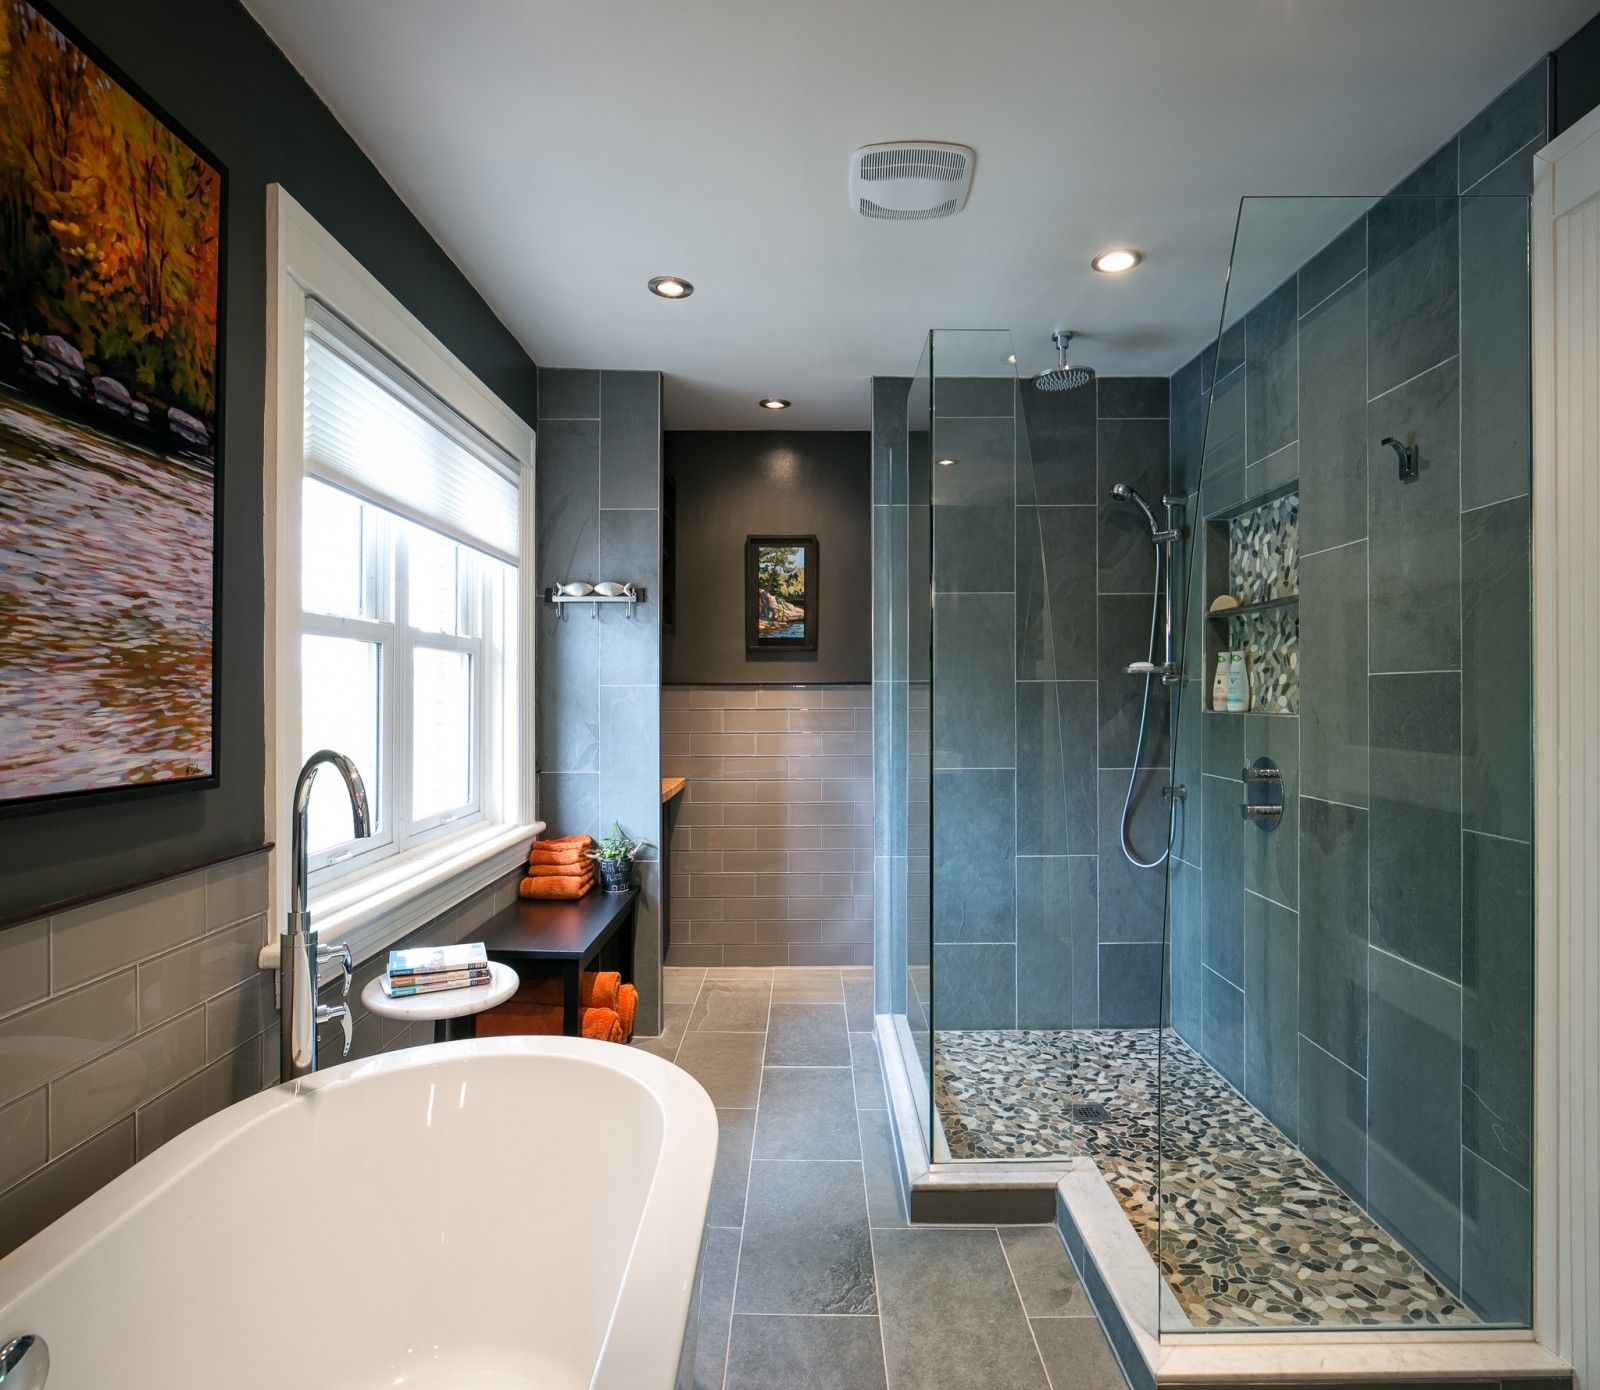 Residential Interior Photography  Bathrooms  Kitchengrassroots Design  Jvl Photographyjvl